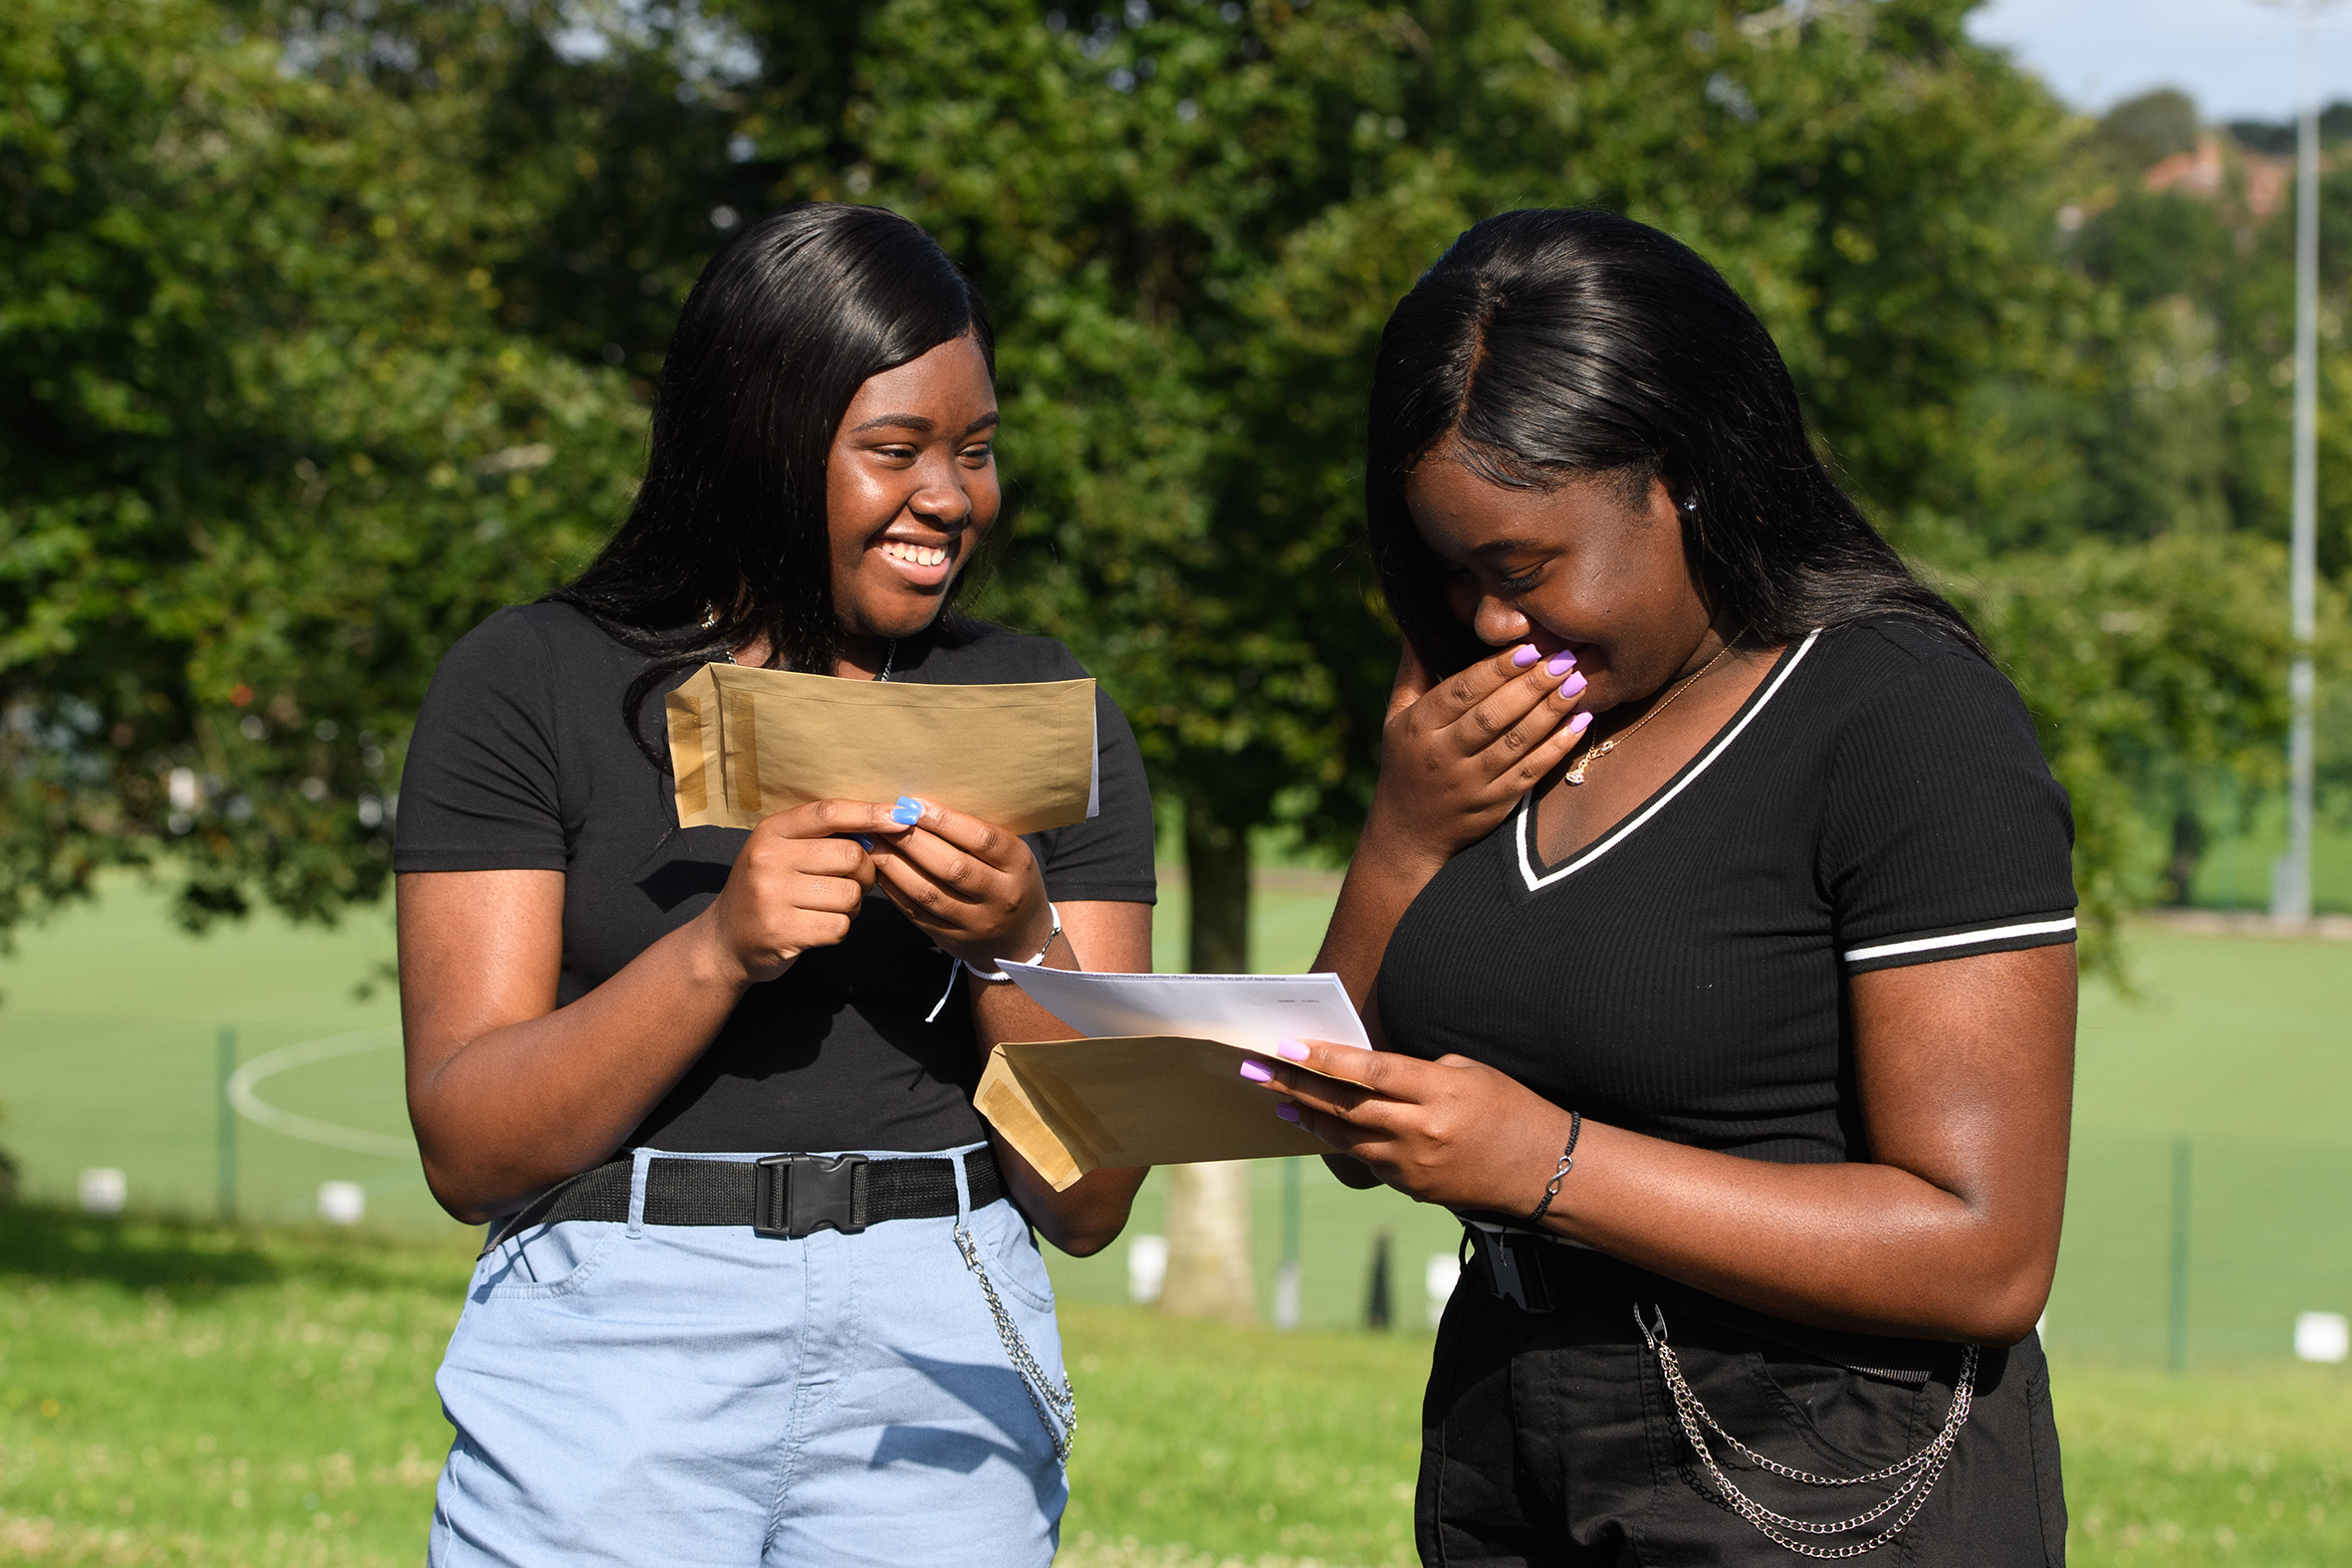 Success! Students at John Cabot Academy were thrilled to receive their GCSE results after a challenging two years during the pandemic